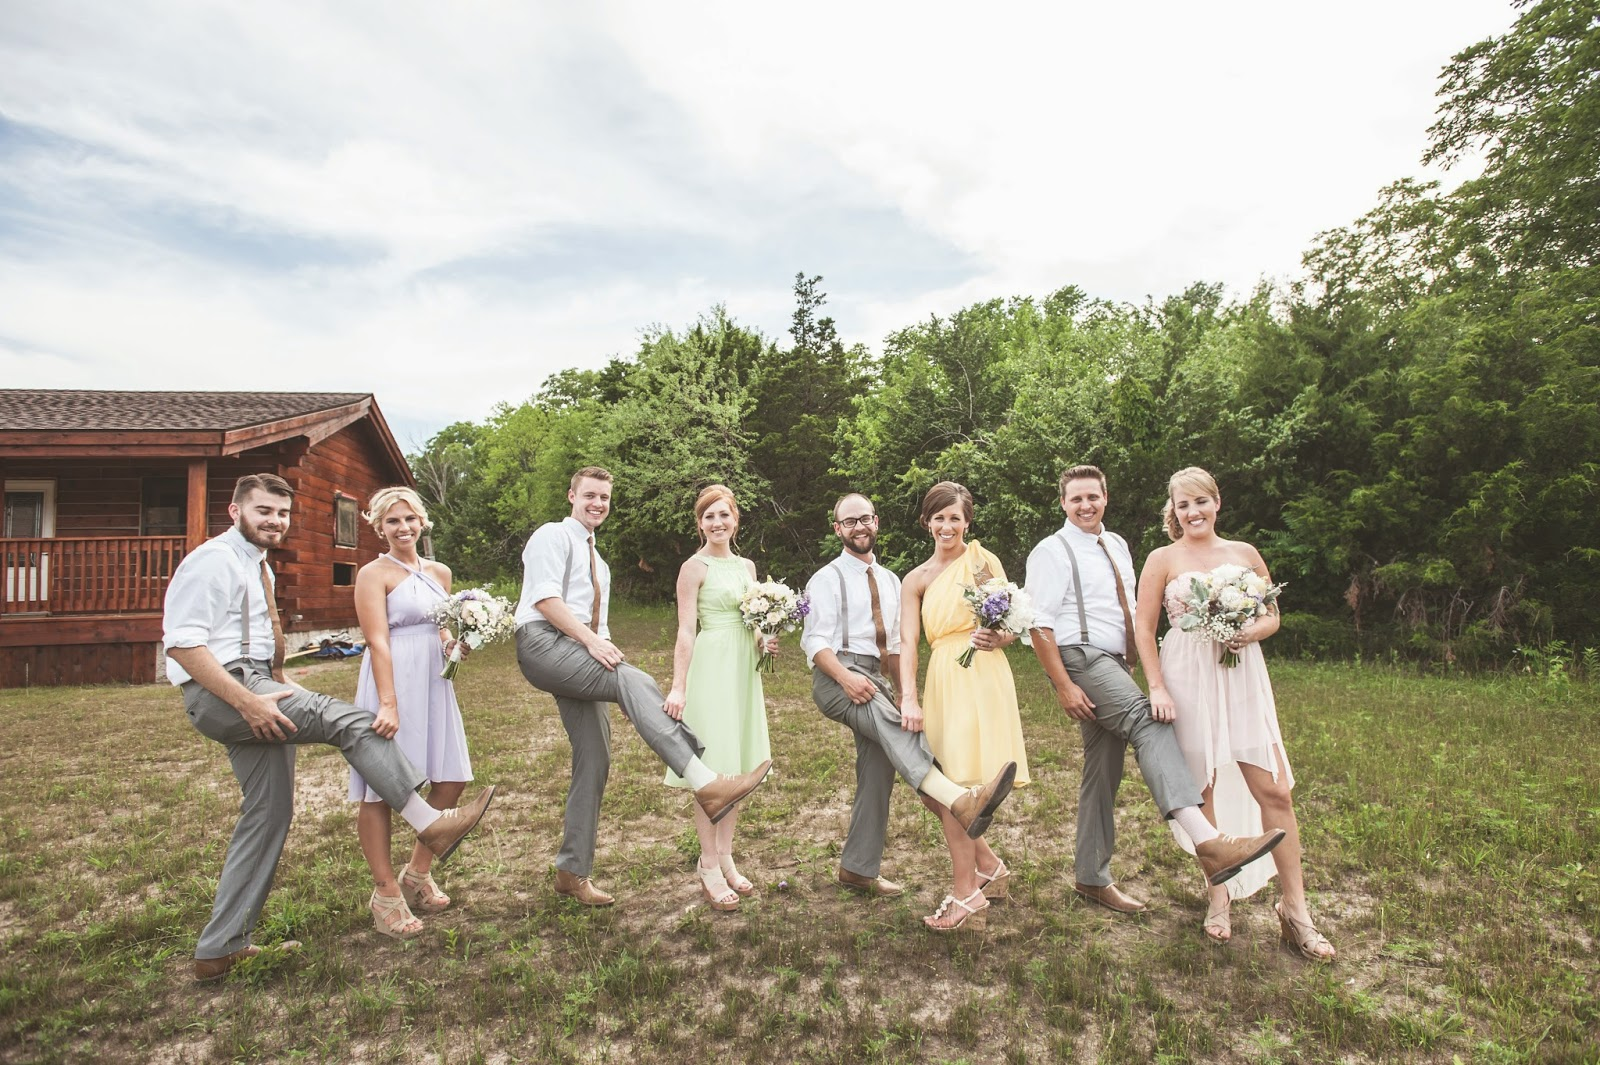 mismatched bridesmaid dresses and color coordinated groomsmen socks